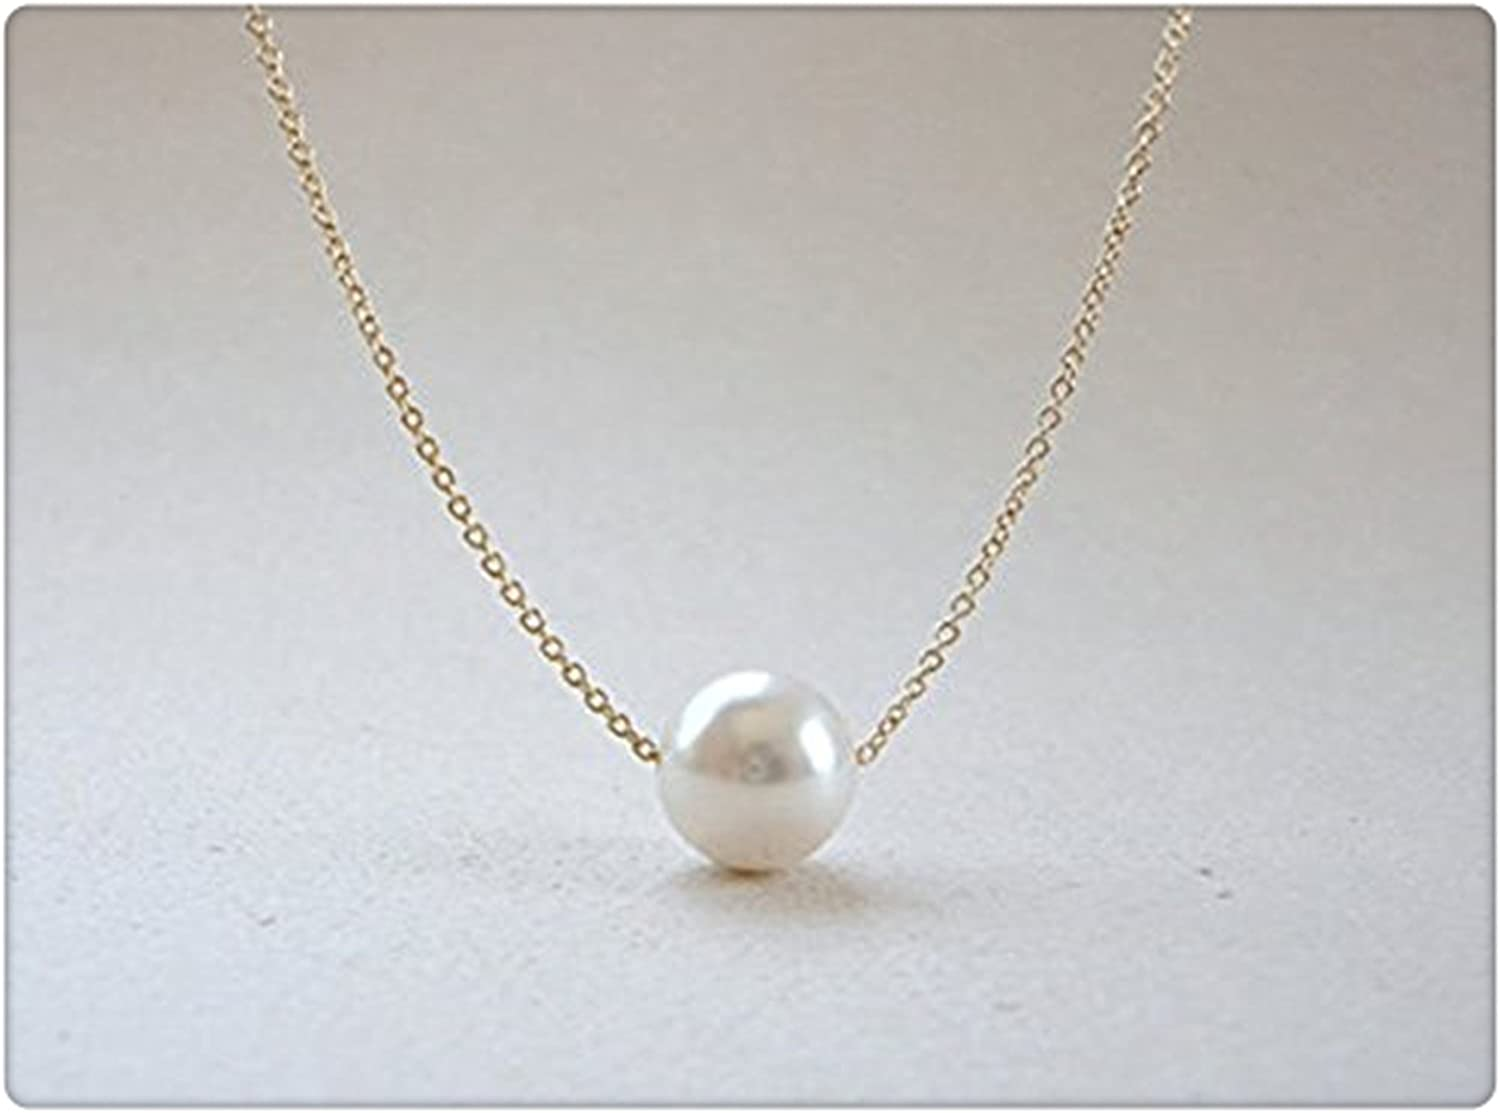 Floating pearl necklace,bridesmaid gift,silver chain necklace,wedding jewelry,3 pearl necklace,bridesmaid necklace,christmas gift for her,